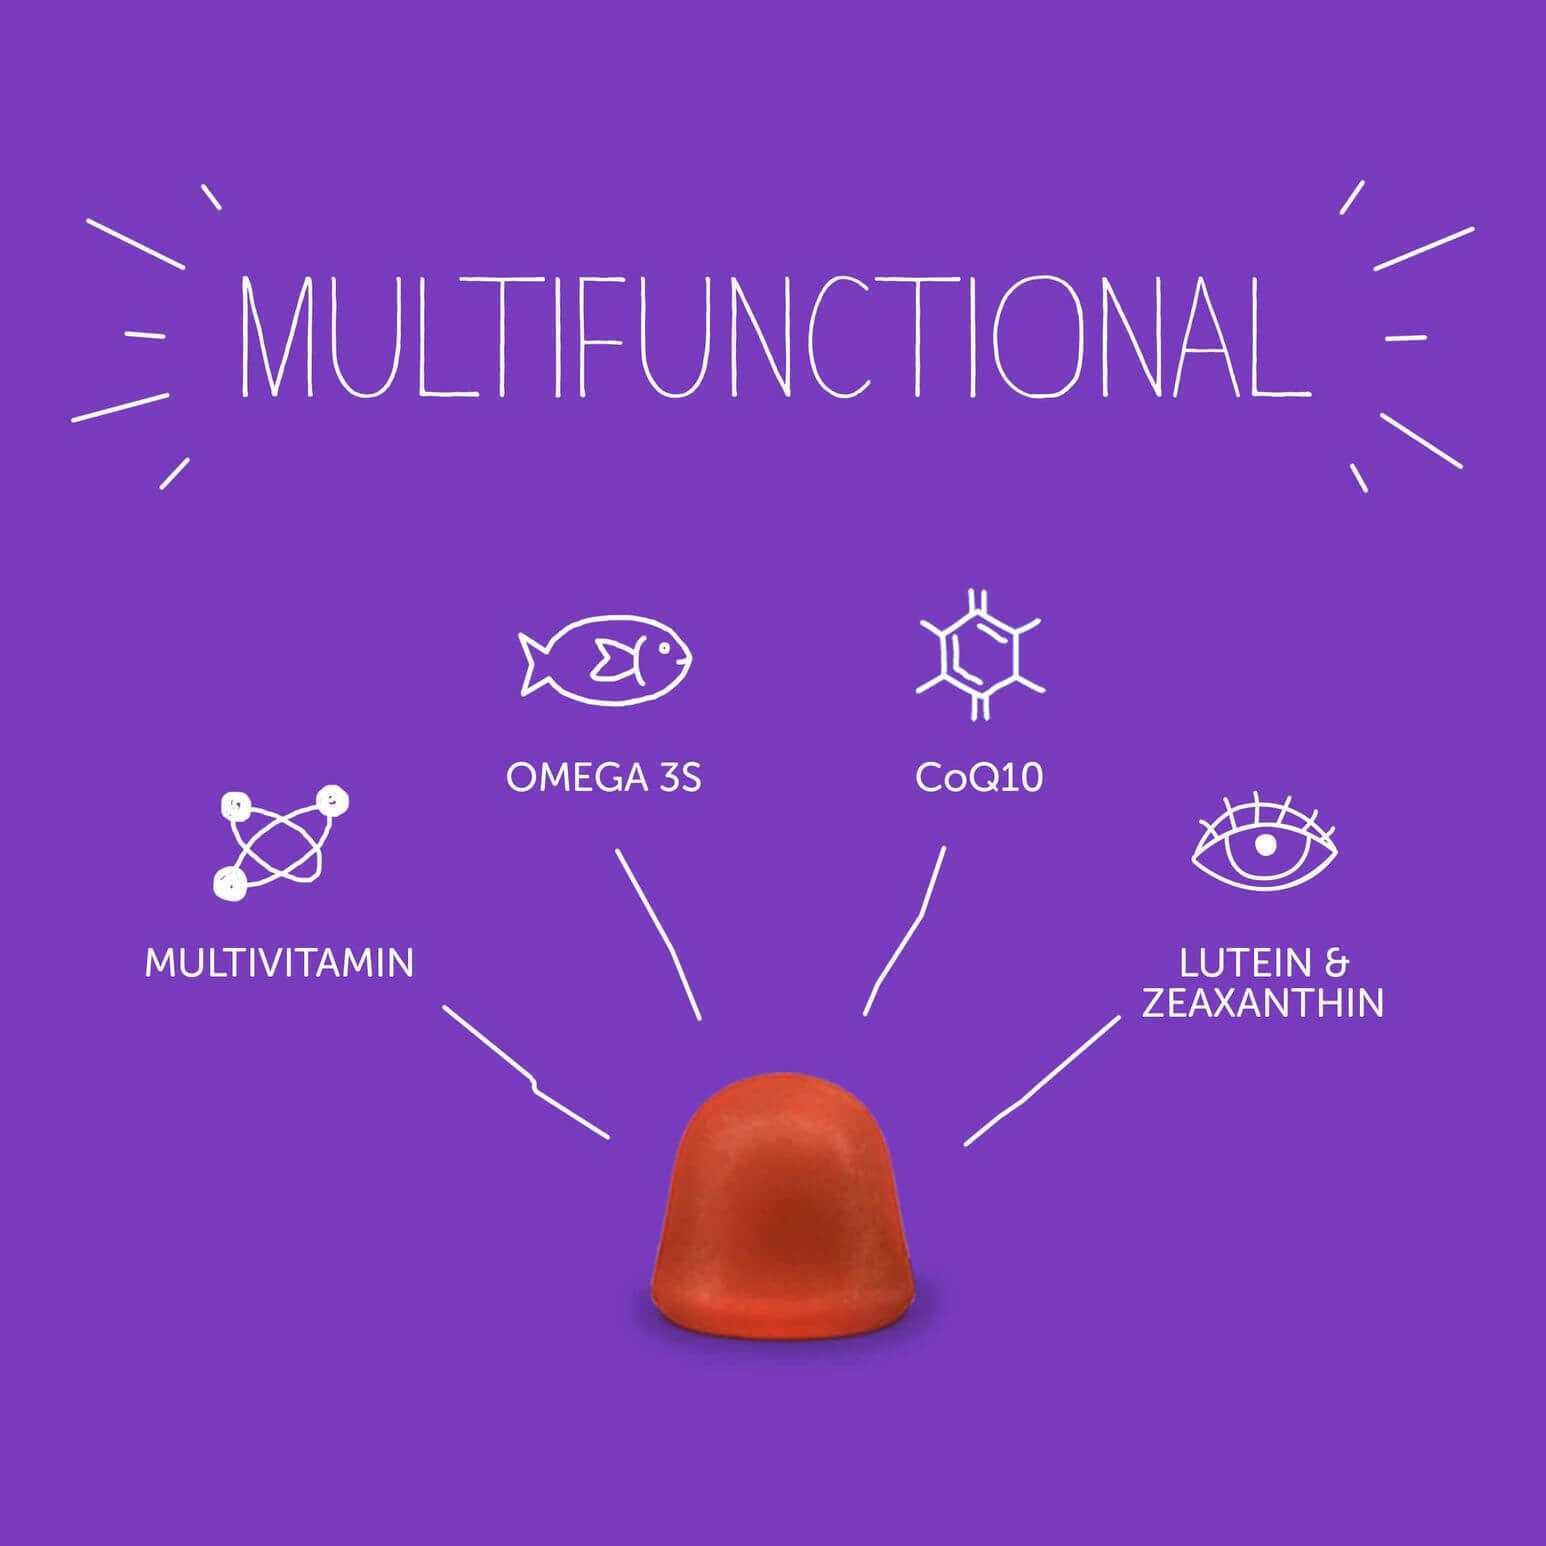 All in one - multivitamin, omega 3 s, Co Q10, lutein & zeaxanthin